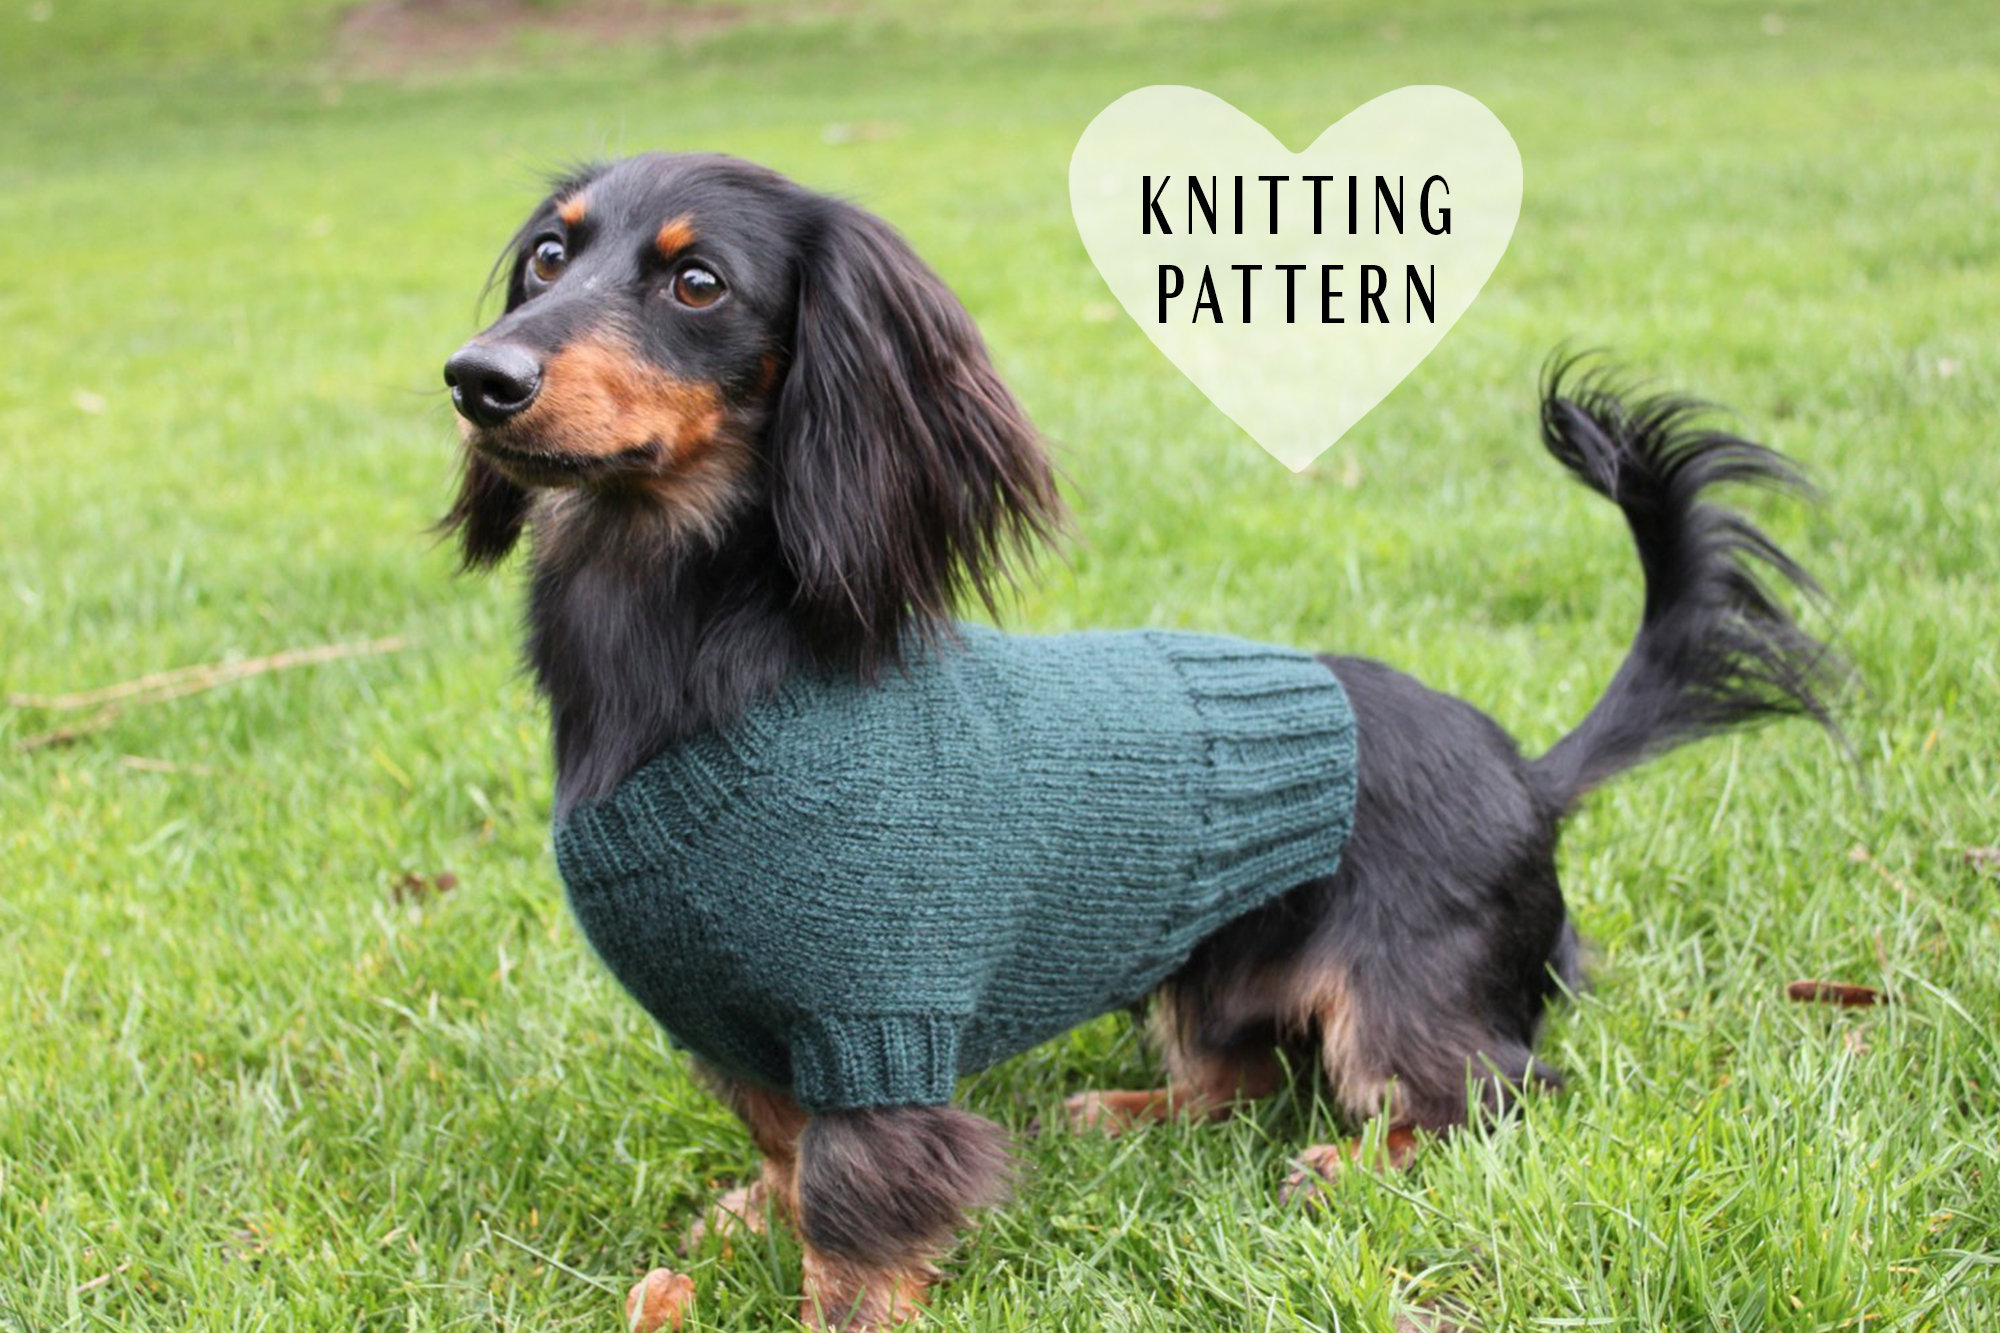 Dog Sweater Knitting Patterns Knitting Pattern Mini Dachshund Dog Sweater Cloud 9 Pet Clothes Pets Dogs Knit Knitted Diy Project Doxie Wiener Dog Little Dog